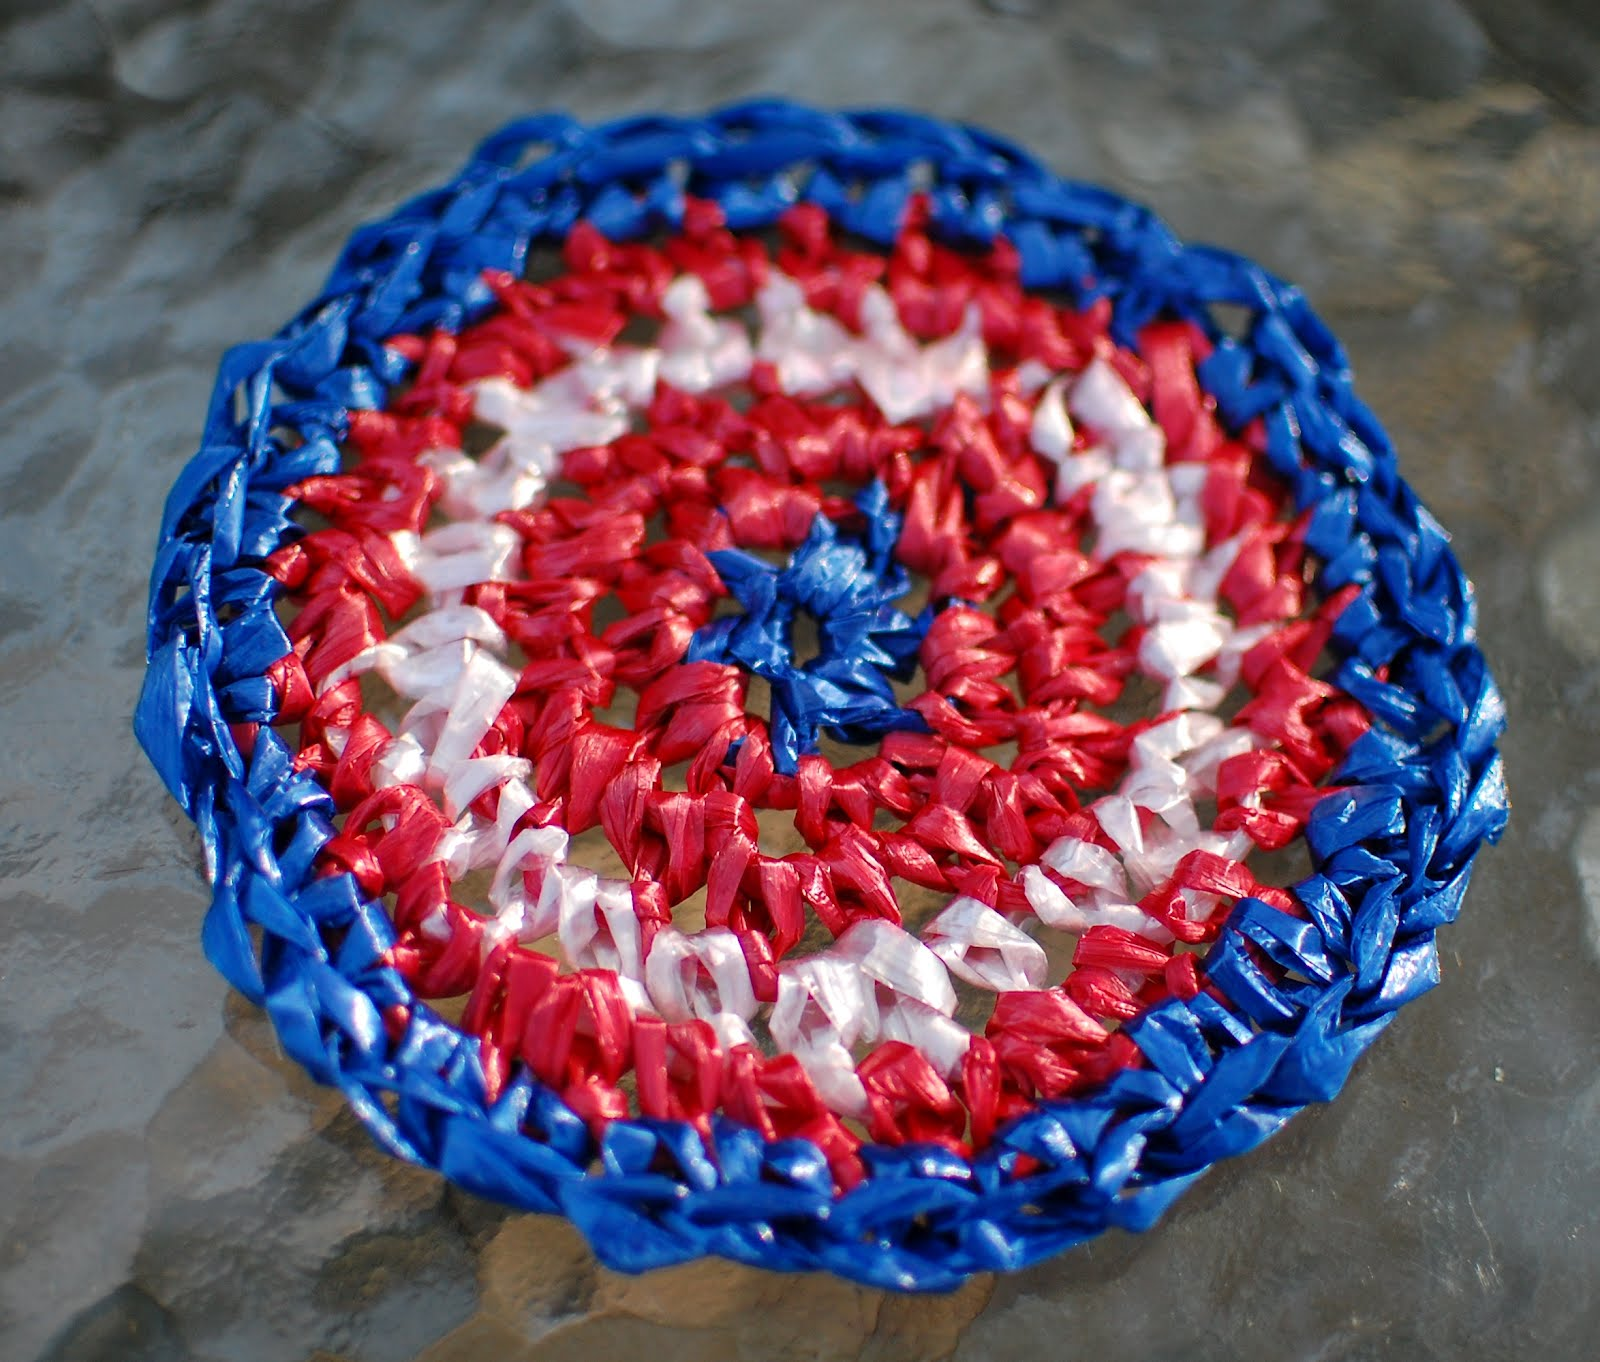 Crocheting With Plarn : Plarn Placemats and Coasters Crochet Pattern - Petals to Picots